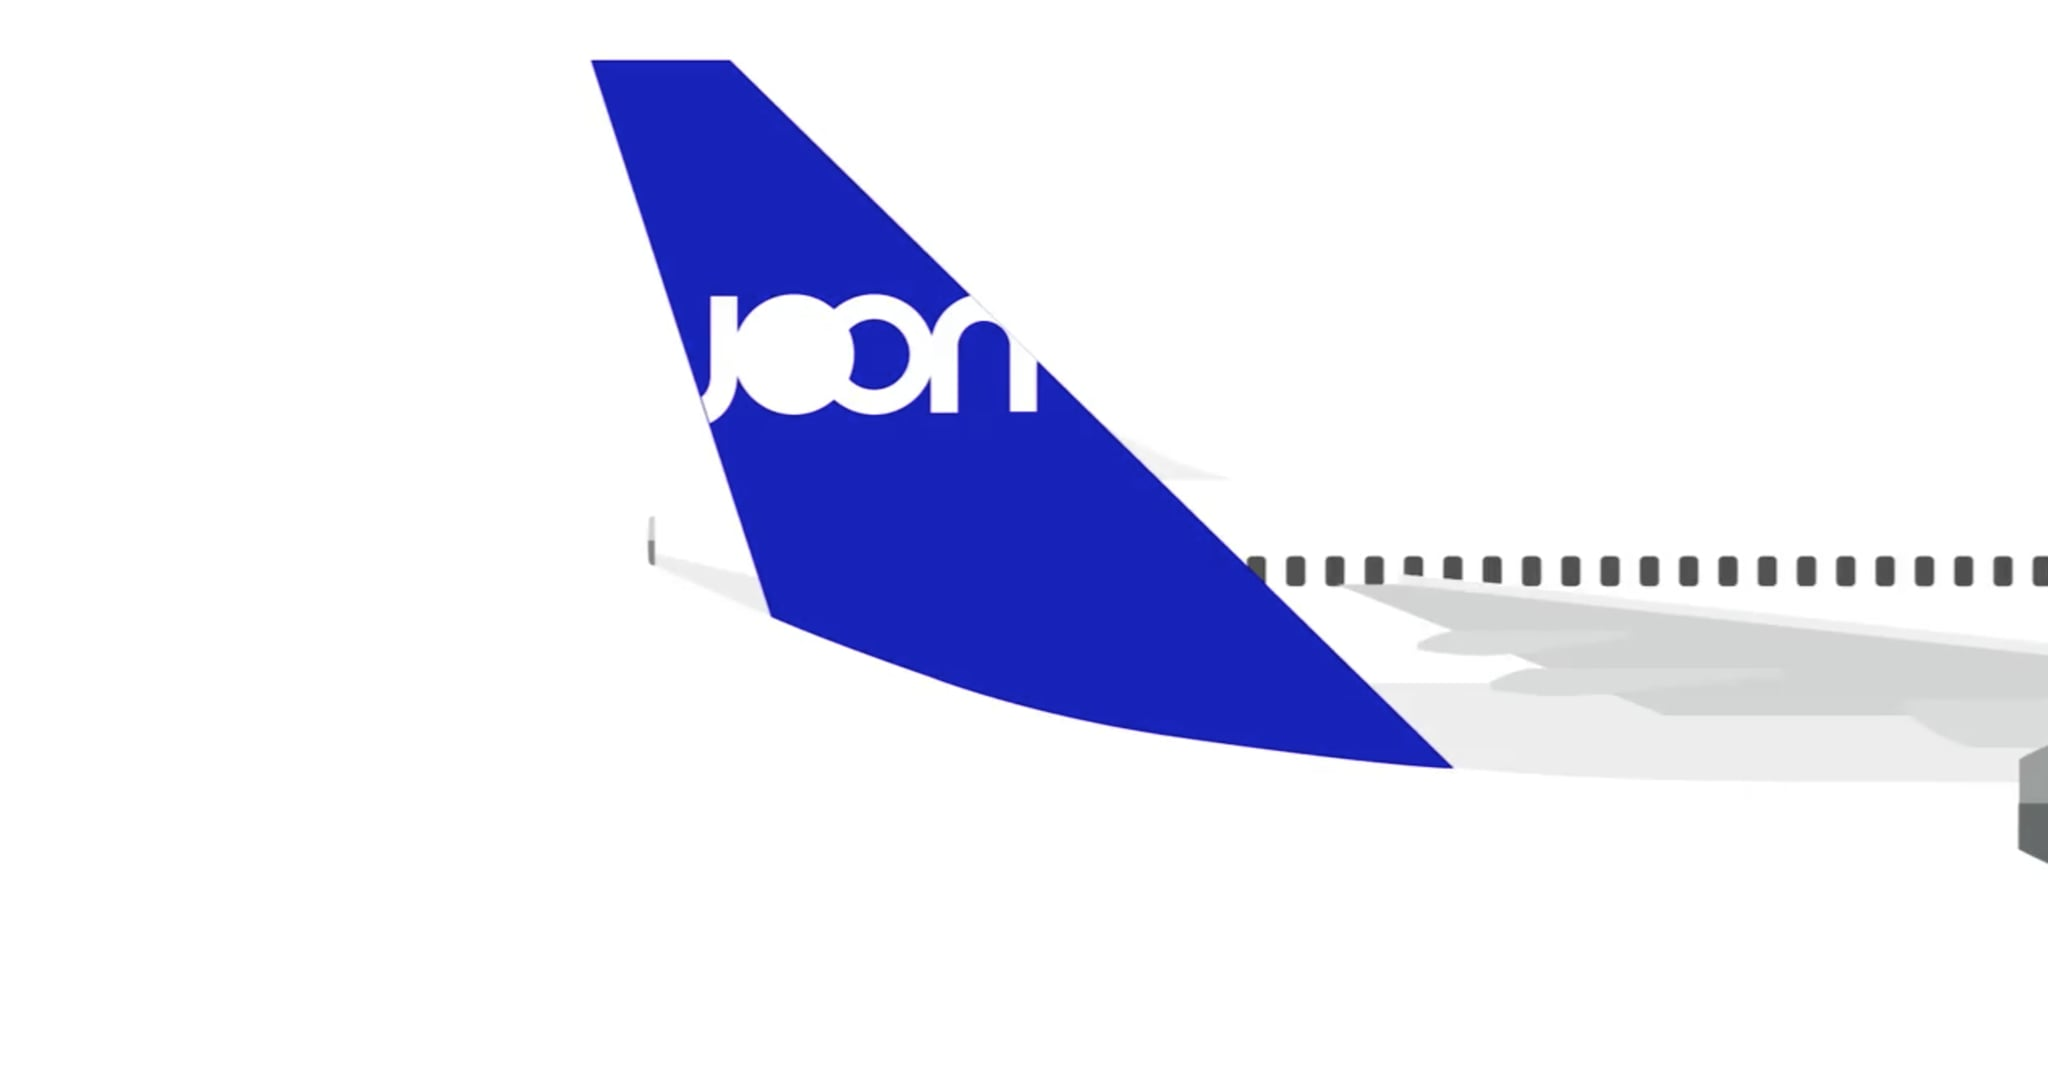 Joon is the name of the new airline from Air France